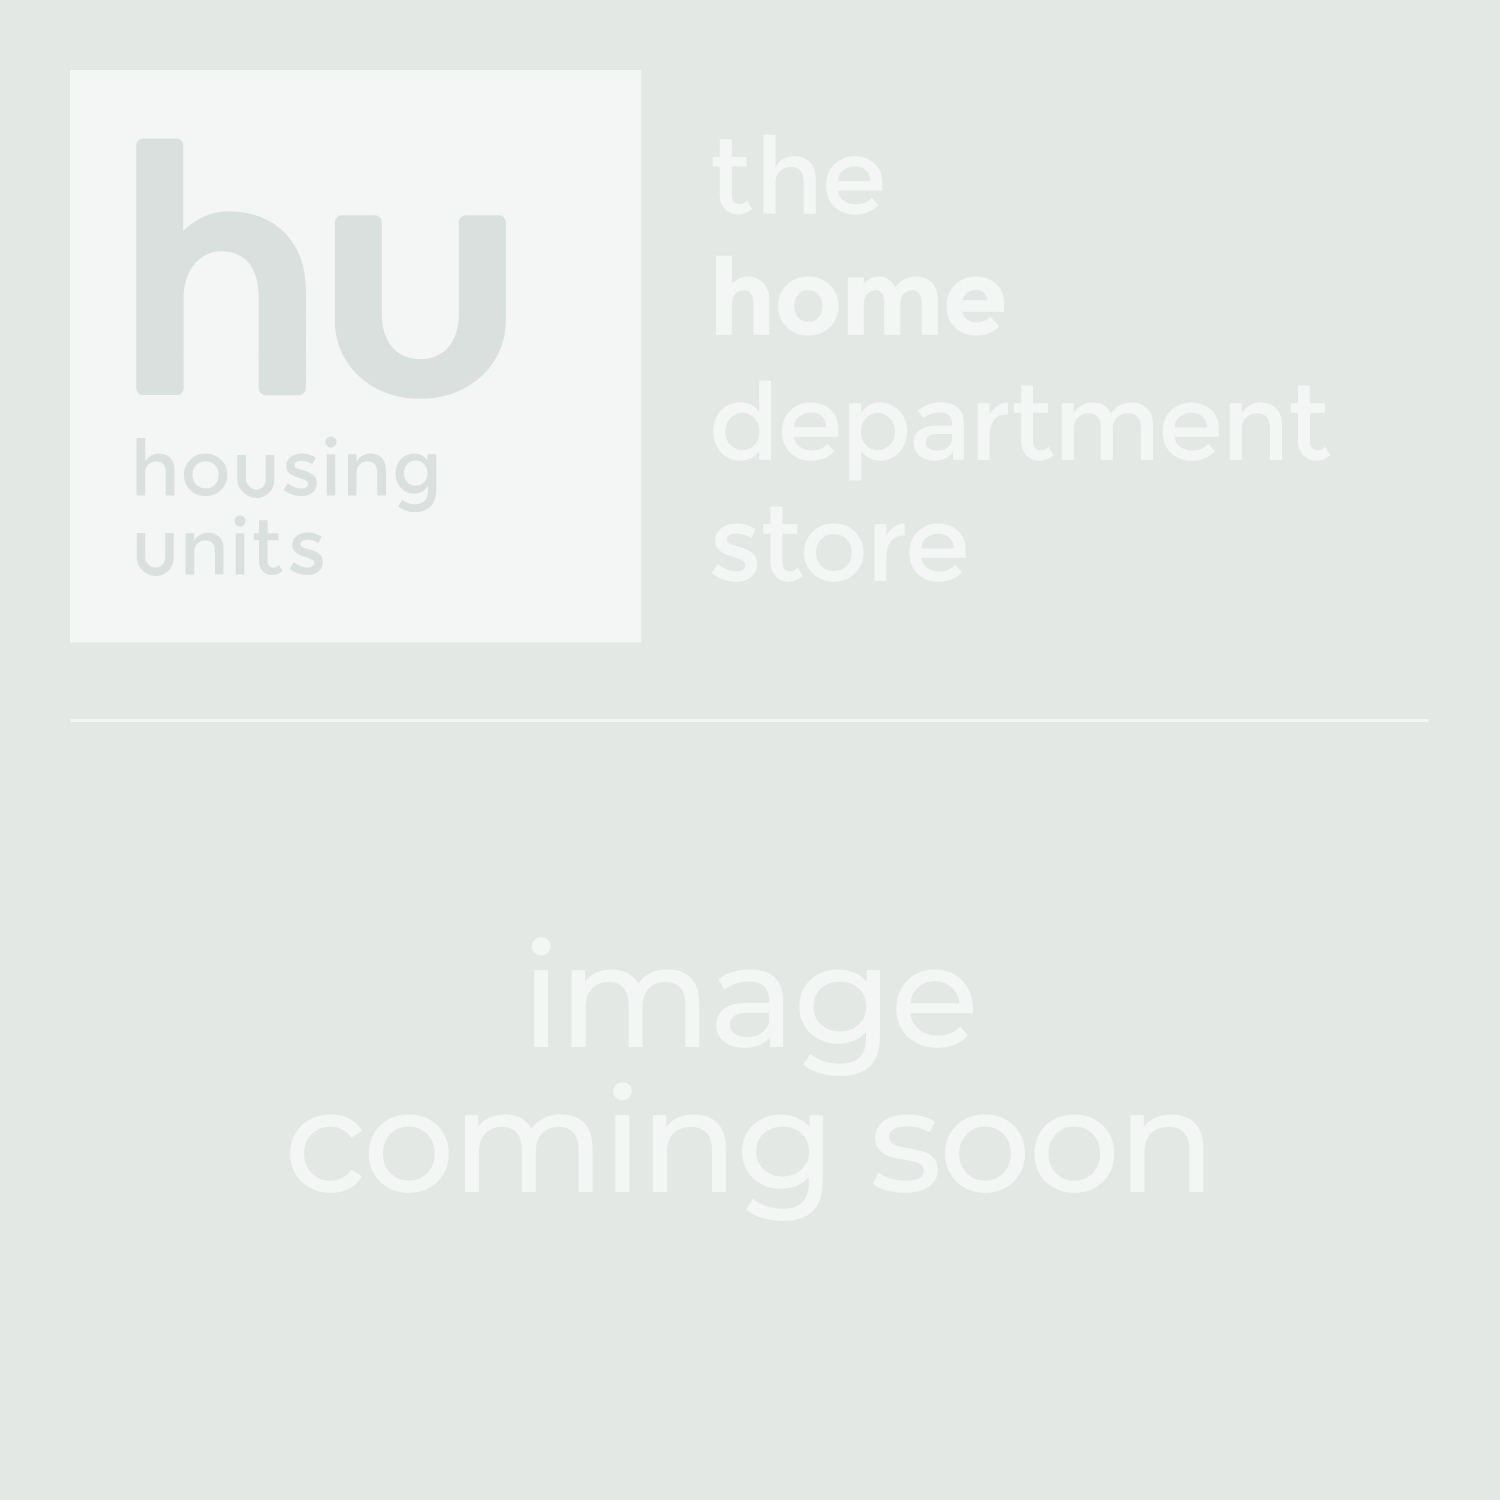 Celsi Puraflame Curved Wall Mounted LCD Electric Fire | Housing Units